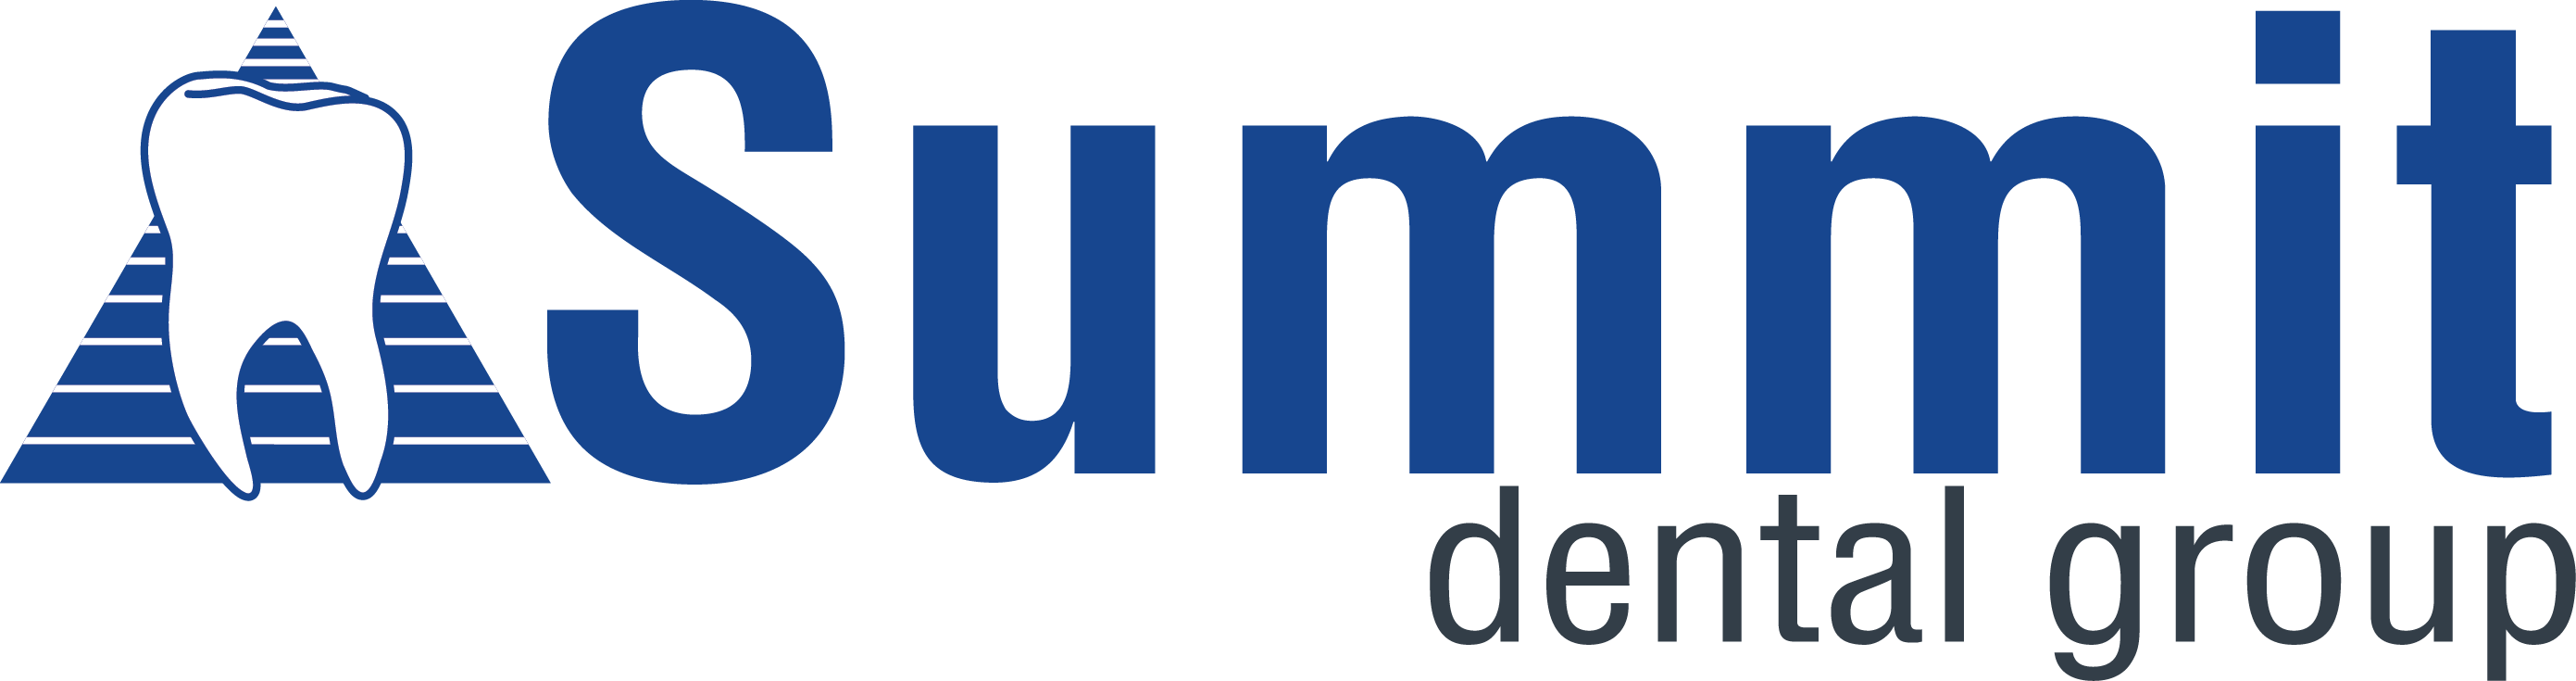 Summit Dental Group